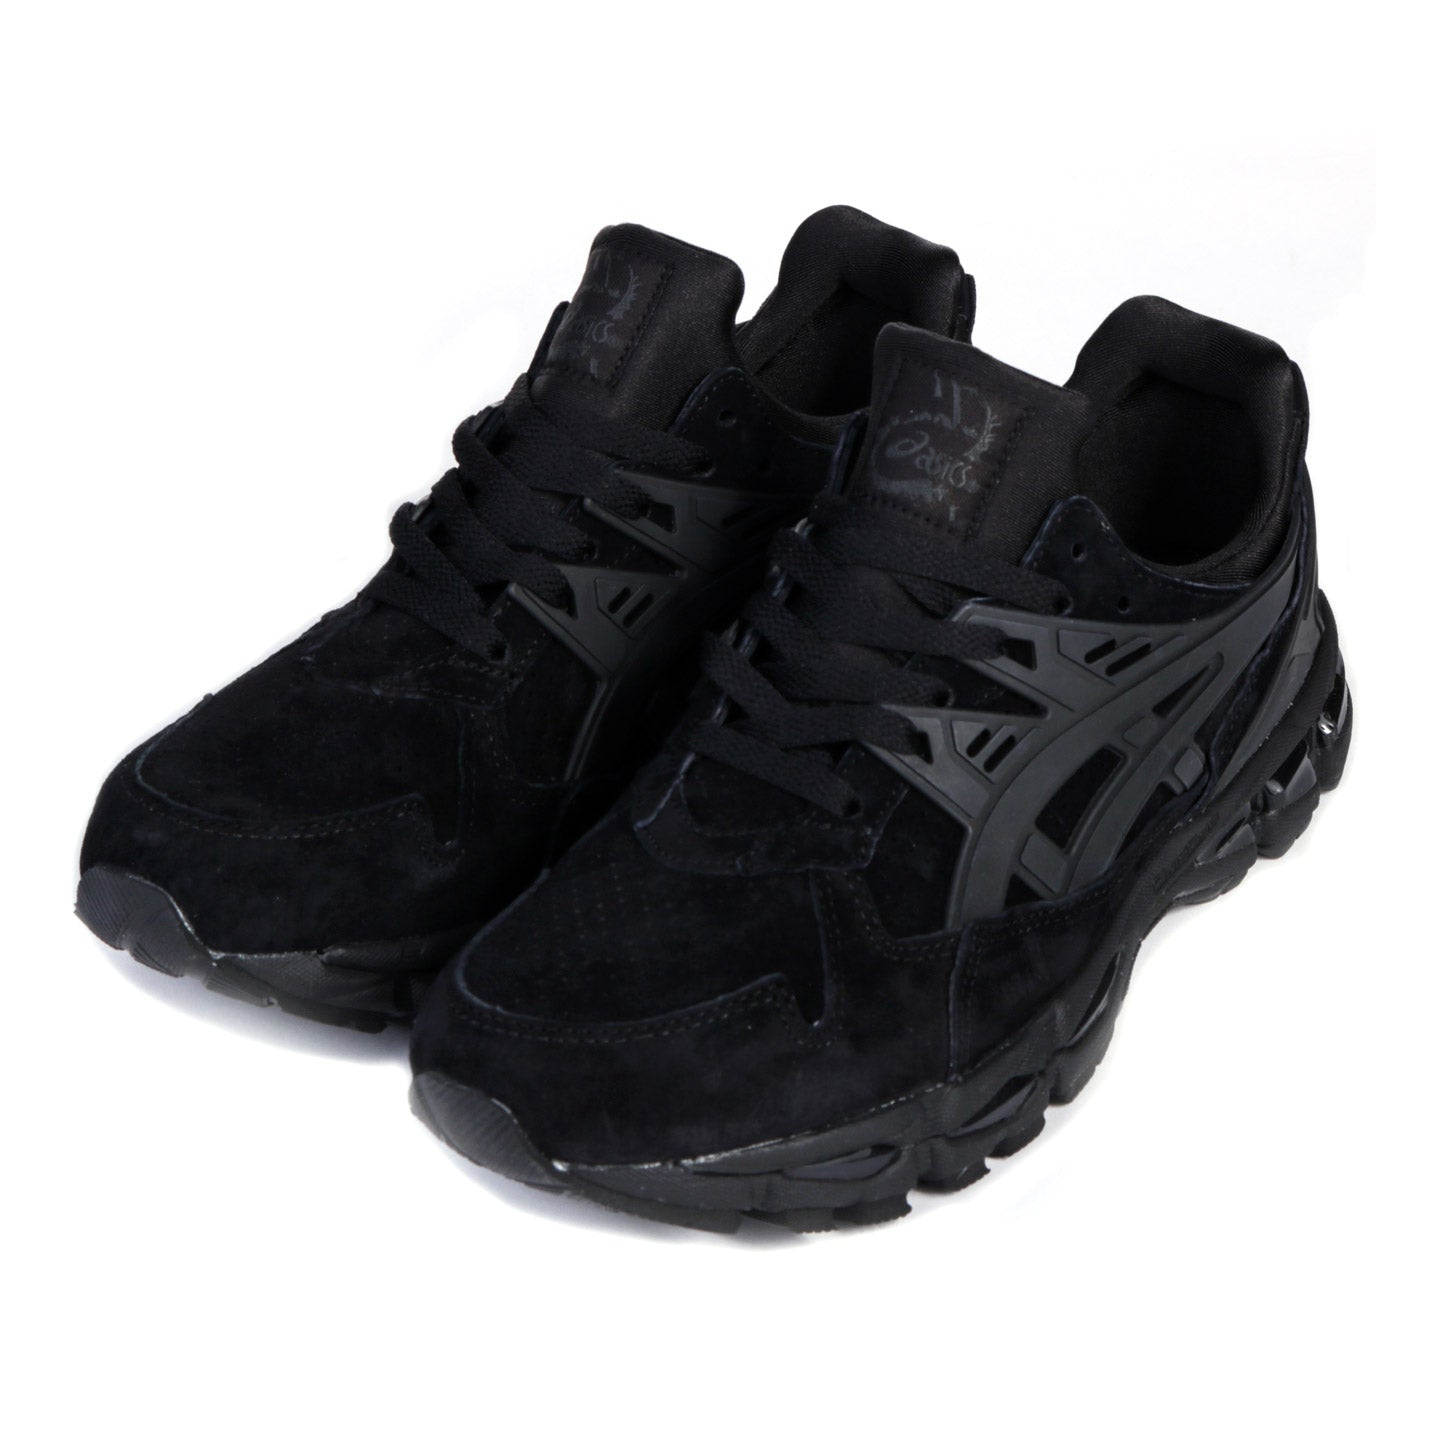 ASICS GEL-KAYANO TRAINER 21 BLACK